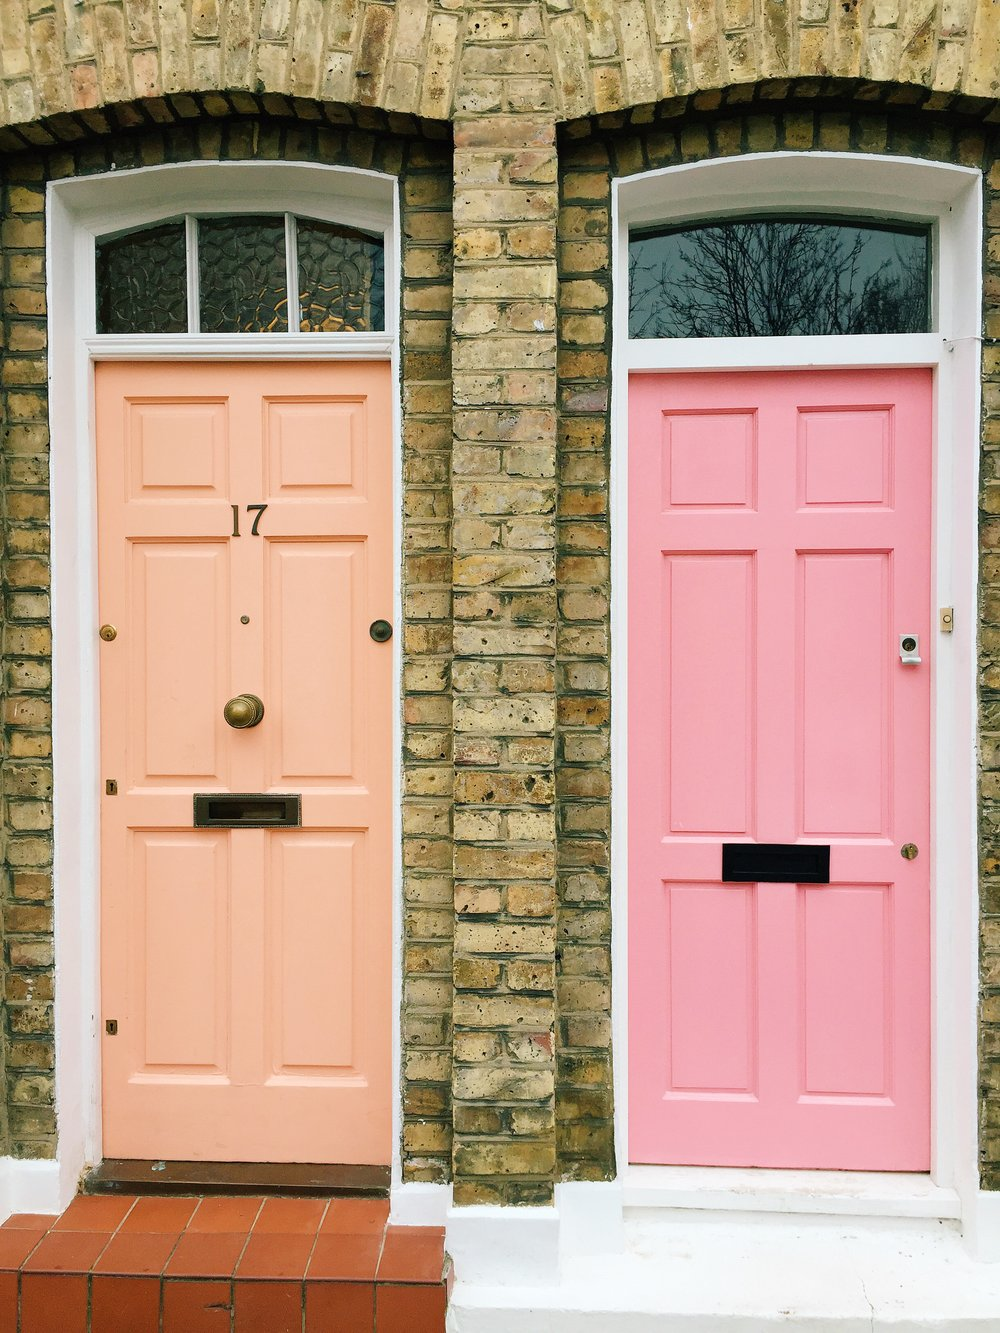 Pink and Peach Doors Columbia Road.JPG